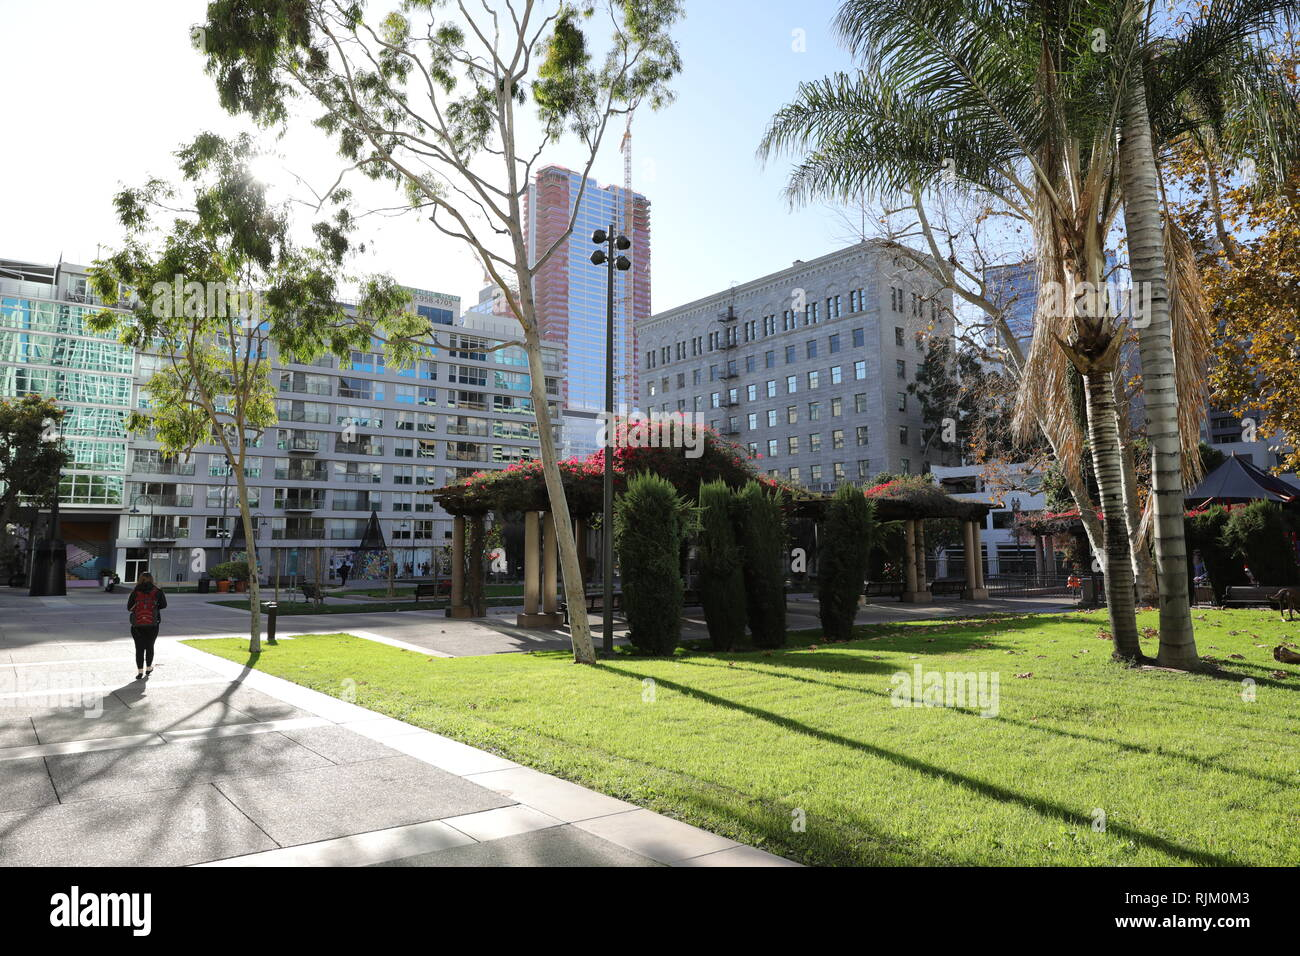 Los Angeles Ca Usa 2 5 2019 Fidm Fashion Institute Of Design Merchandising Museum Stock Photo Alamy